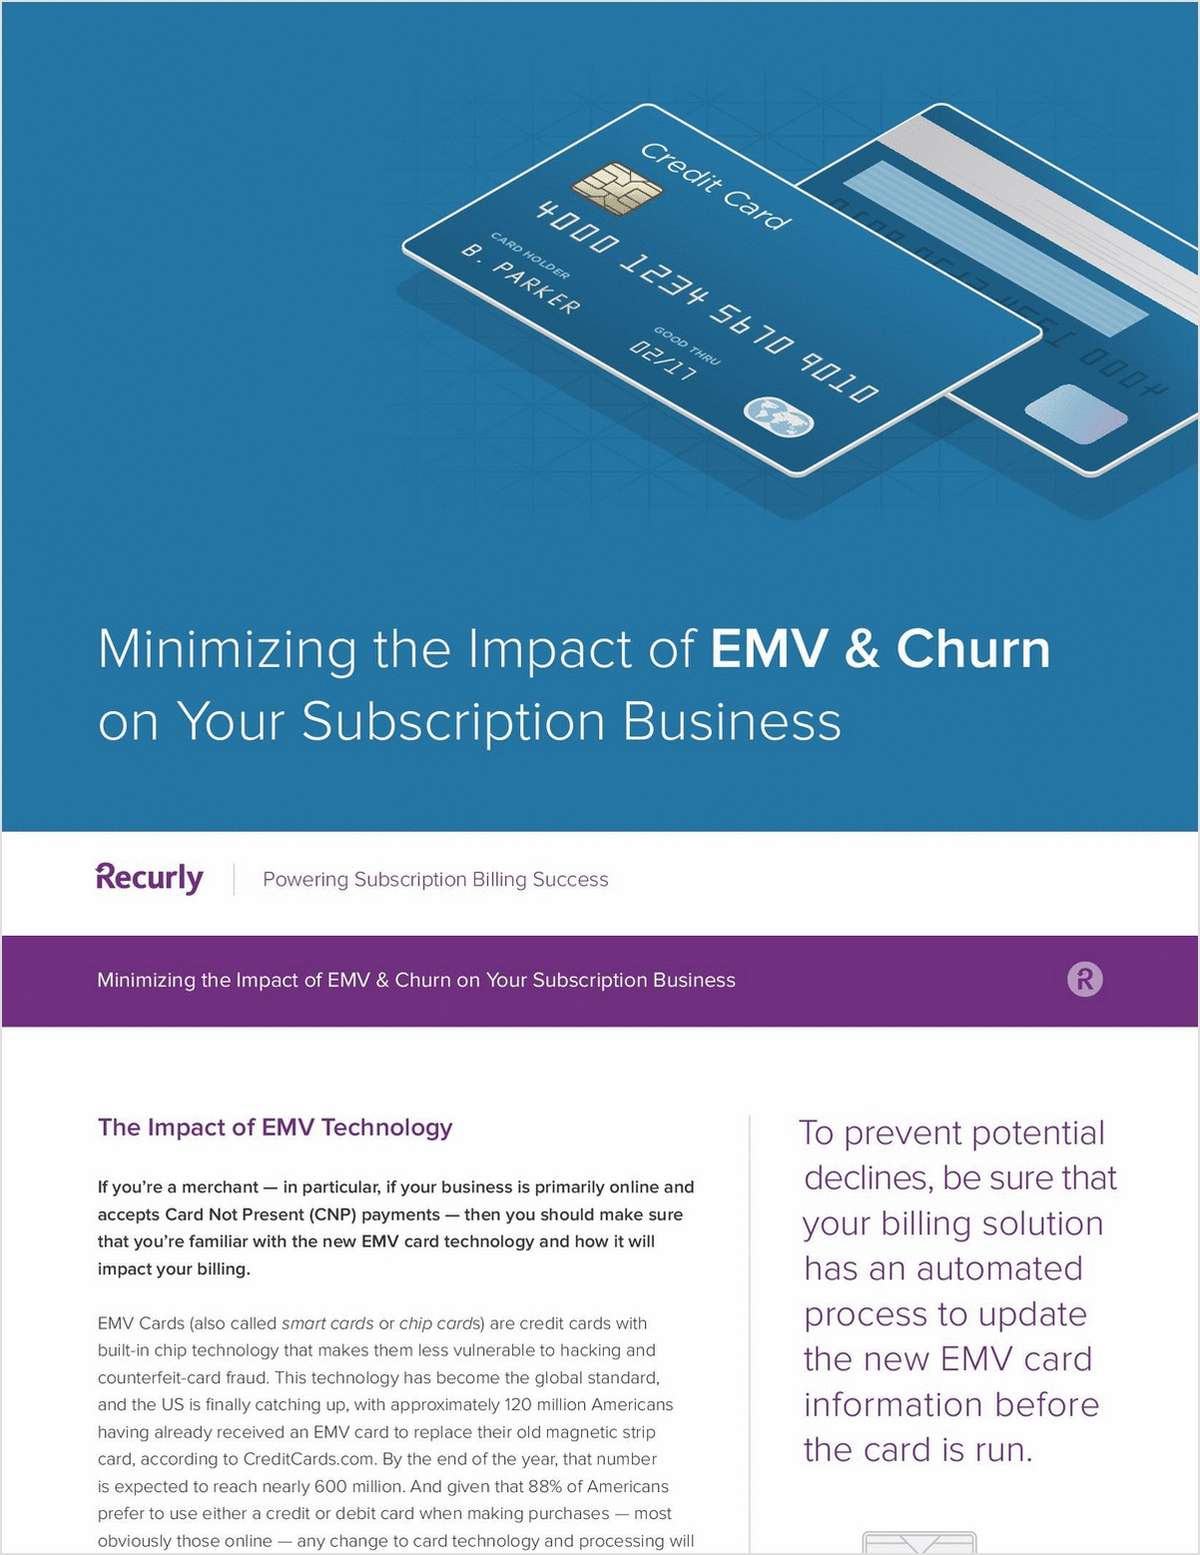 Minimizing the Impact of EMV & Churn on Your Subscription Business